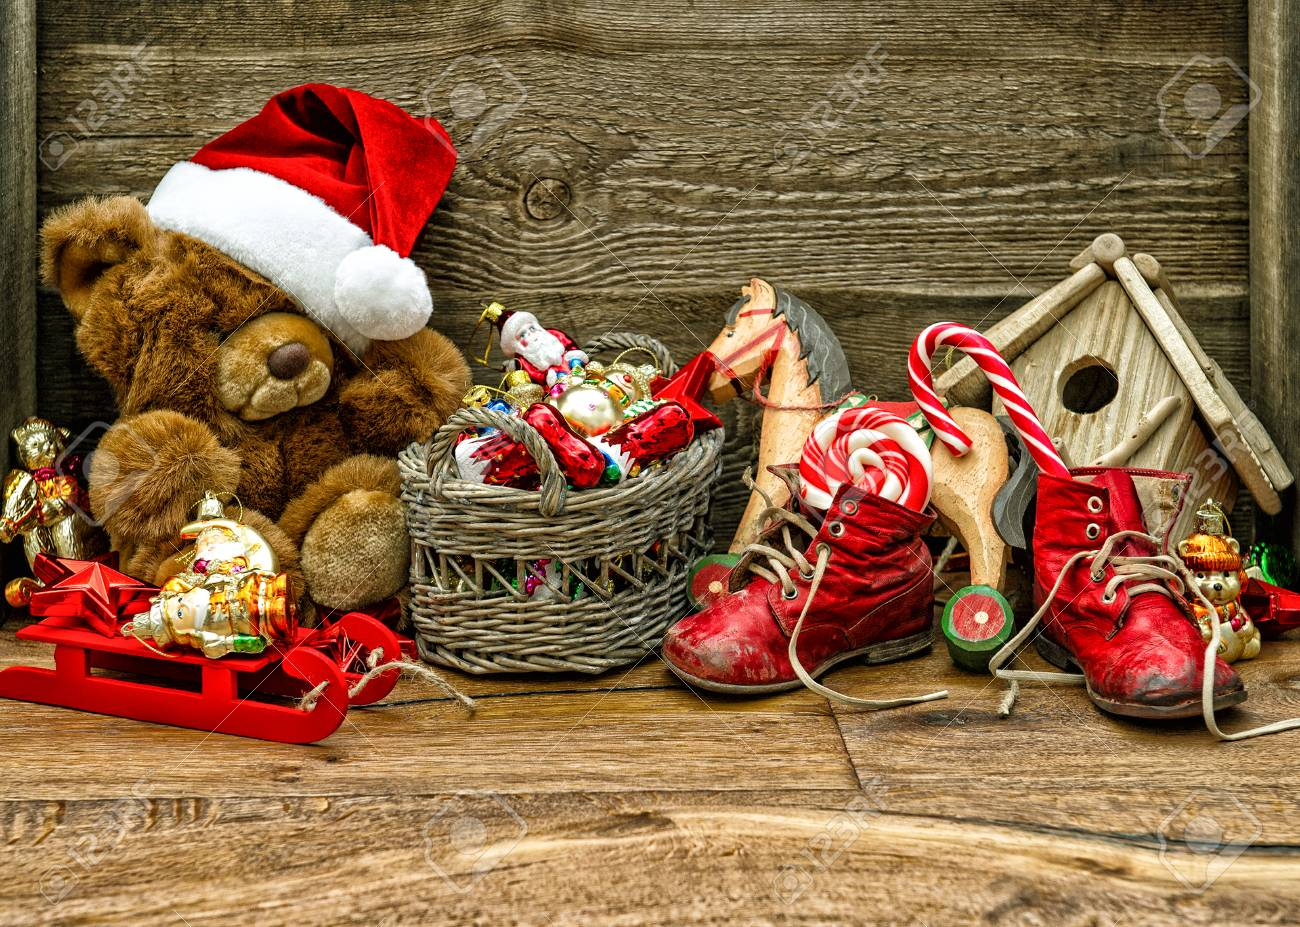 nostalgic christmas decorations with antique toys over wooden background stock photo 34117923